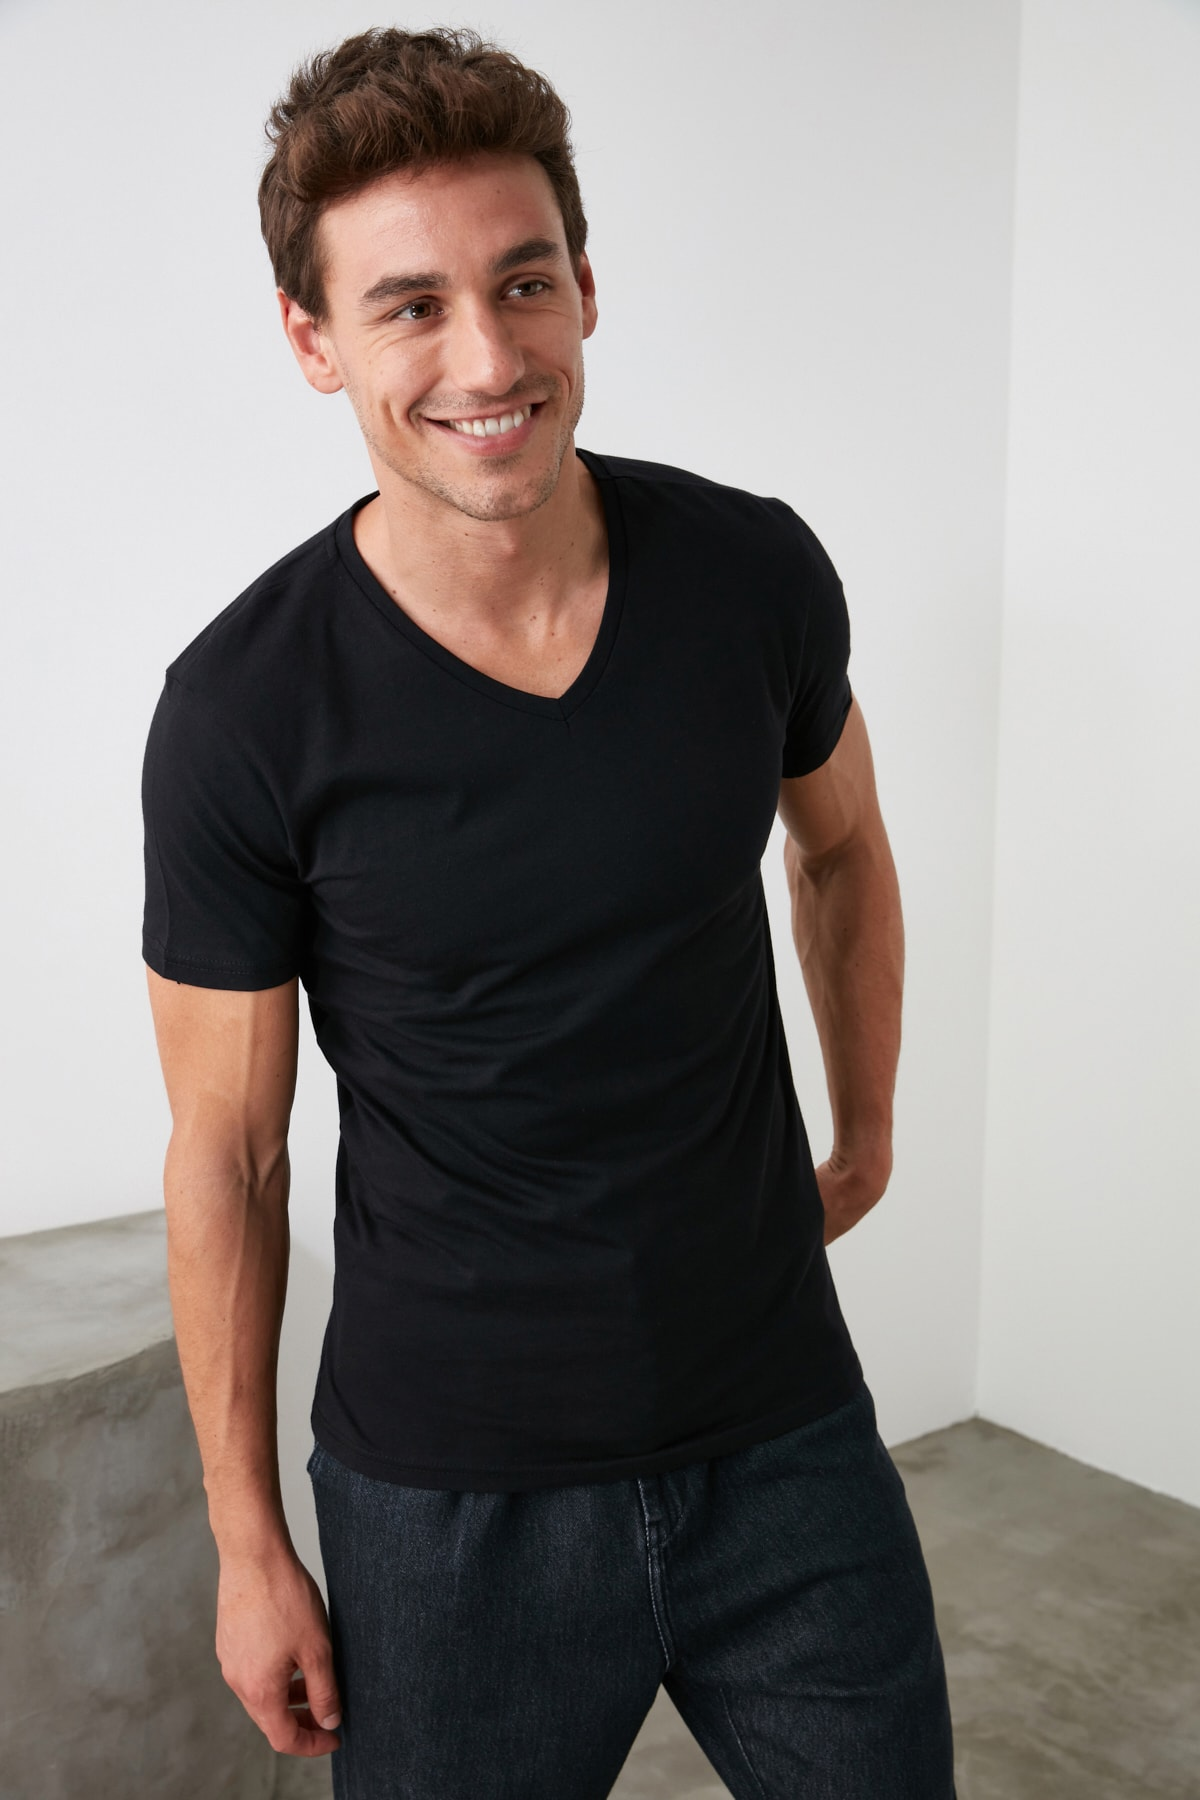 TRENDYOL MAN Siyah Erkek Basic Slim Fit T-Shirt - Pamuklu V Yaka Slim Fit T-Shirt TMNSS19BO0002 2